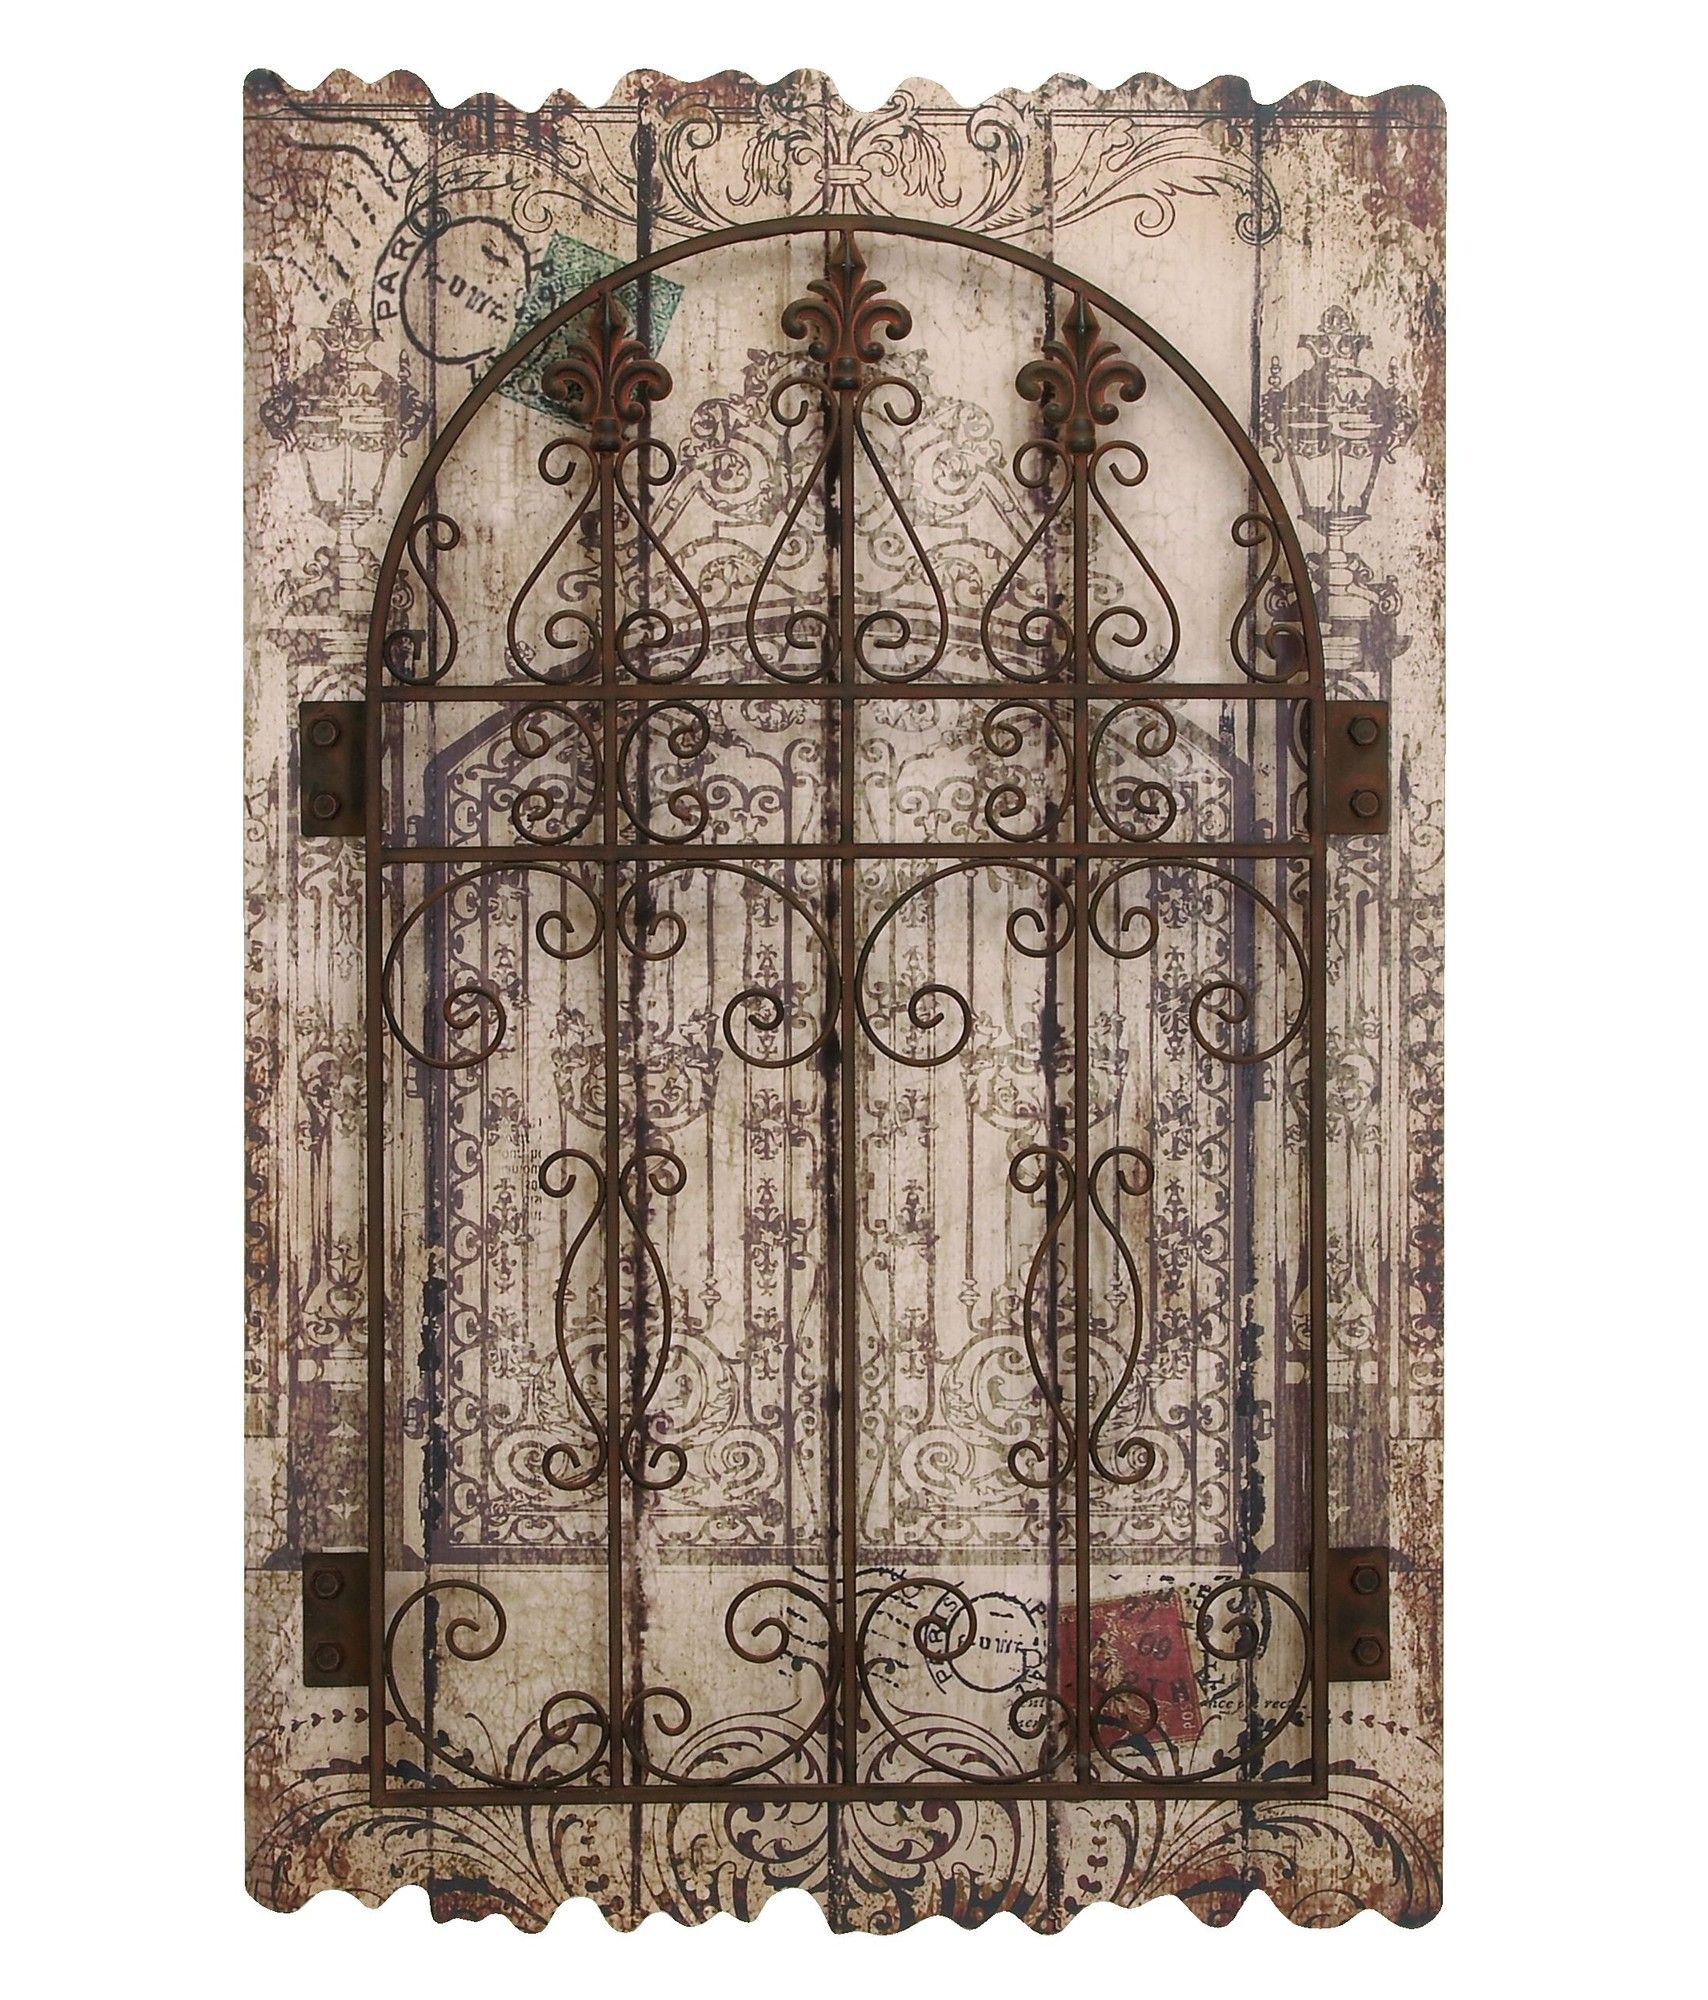 Woodland Imports Attractive Wood Panel Wall D�cor: Woodland Imports Décor Rustic Intricated Wall Décor